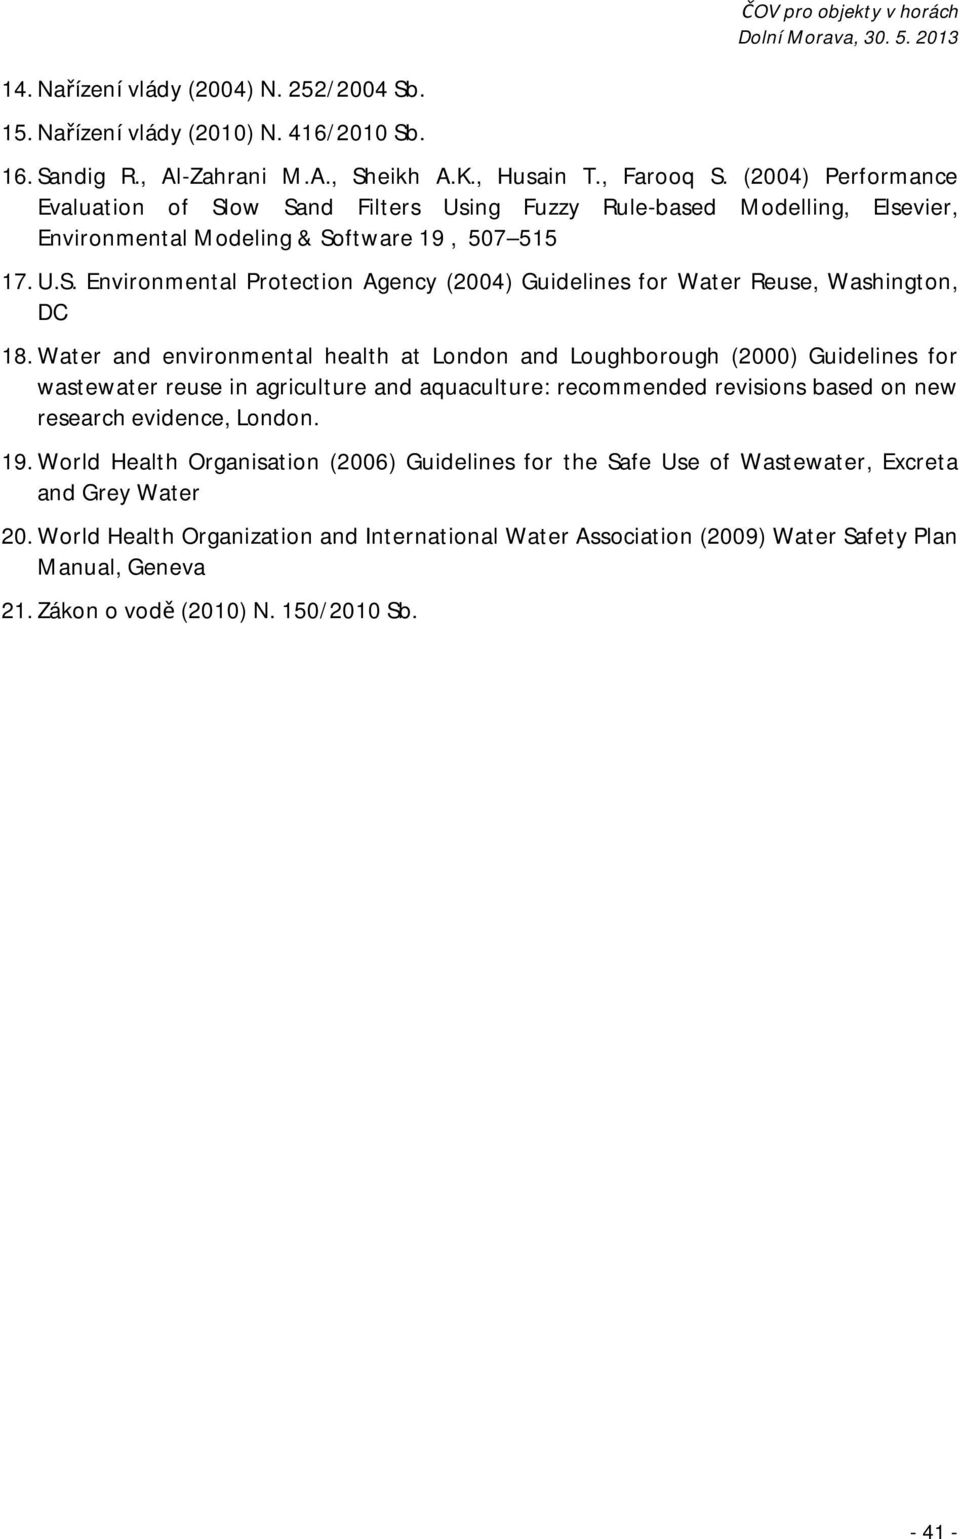 Water and environmental health at London and Loughborough (2000) Guidelines for wastewater reuse in agriculture and aquaculture: recommended revisions based on new research evidence, London. 19.